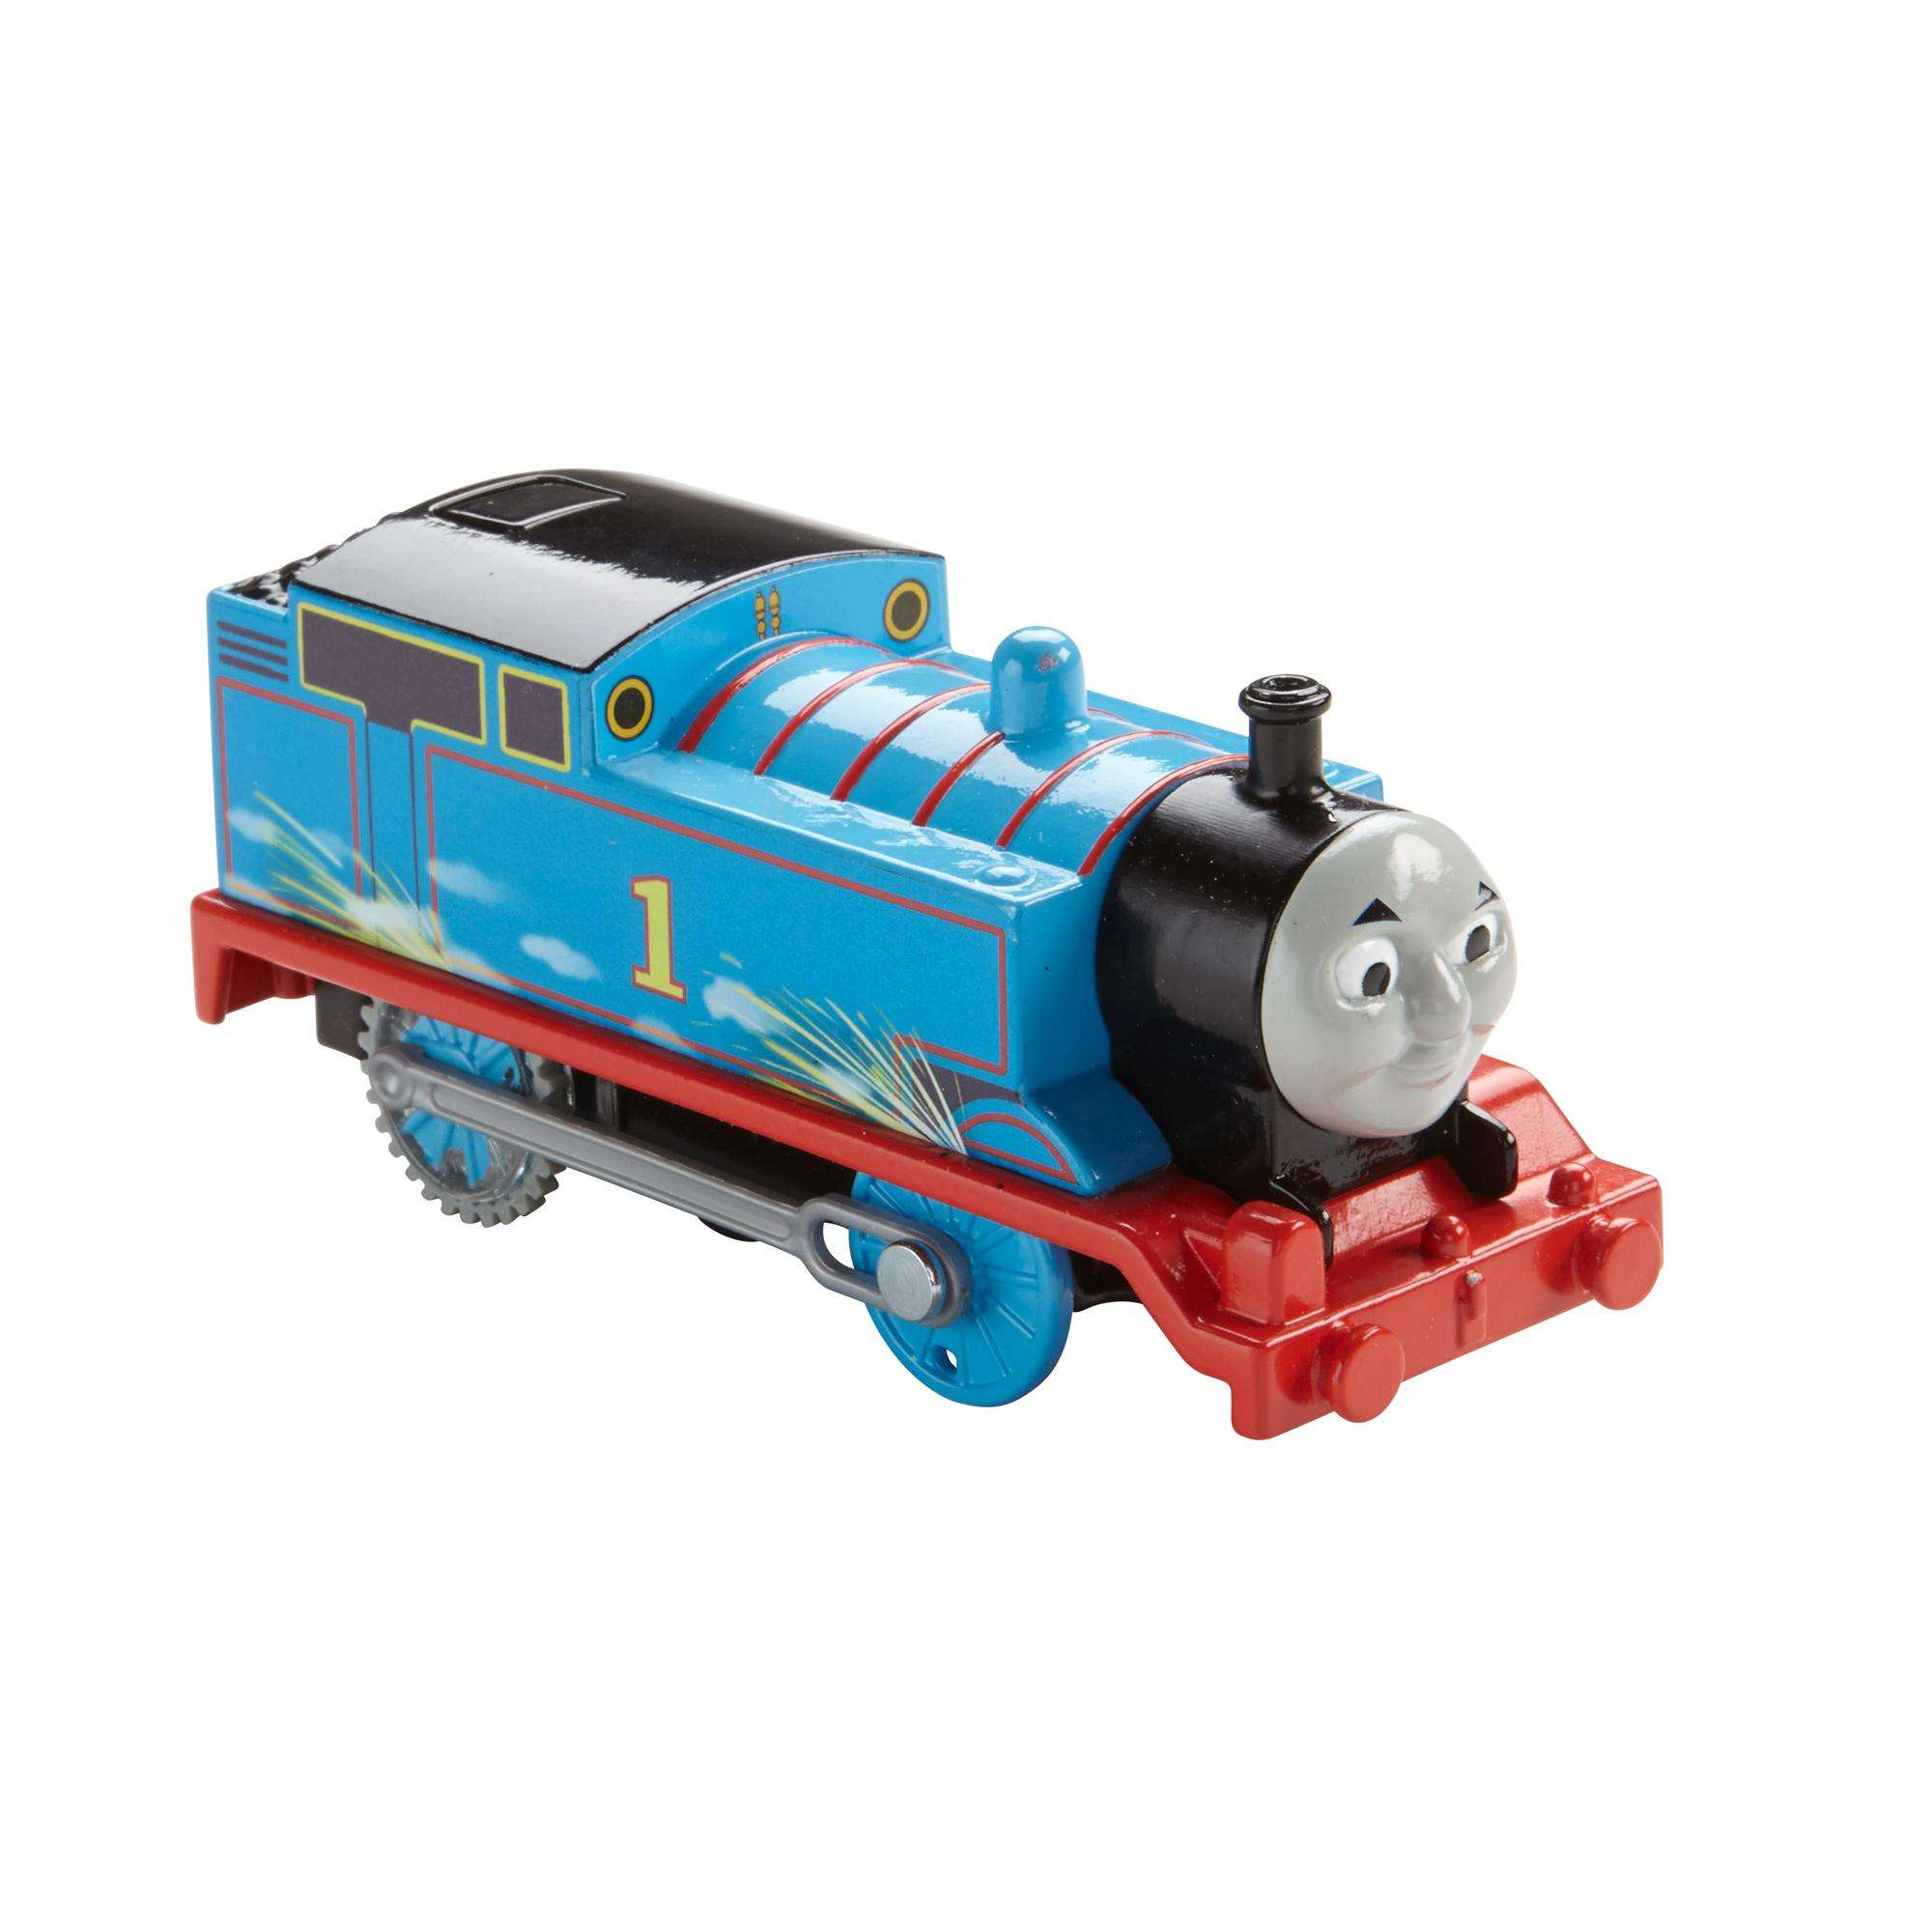 Thomas & Friends TrackMaster Speed & Spark Thomas